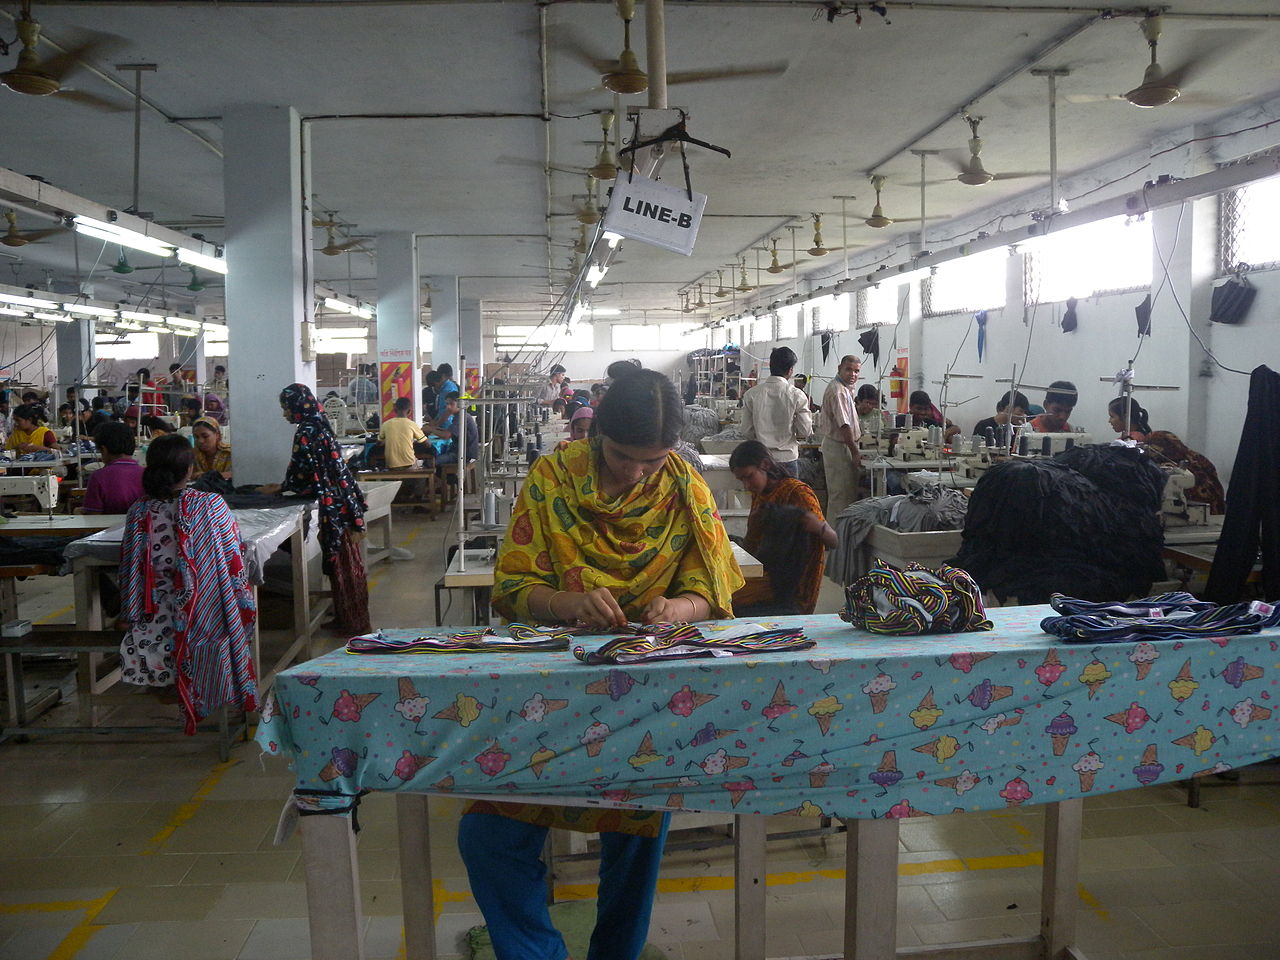 A clothing textile garment factory / assembly line in Bangladesh.Photo by: Tareq Salahuddin